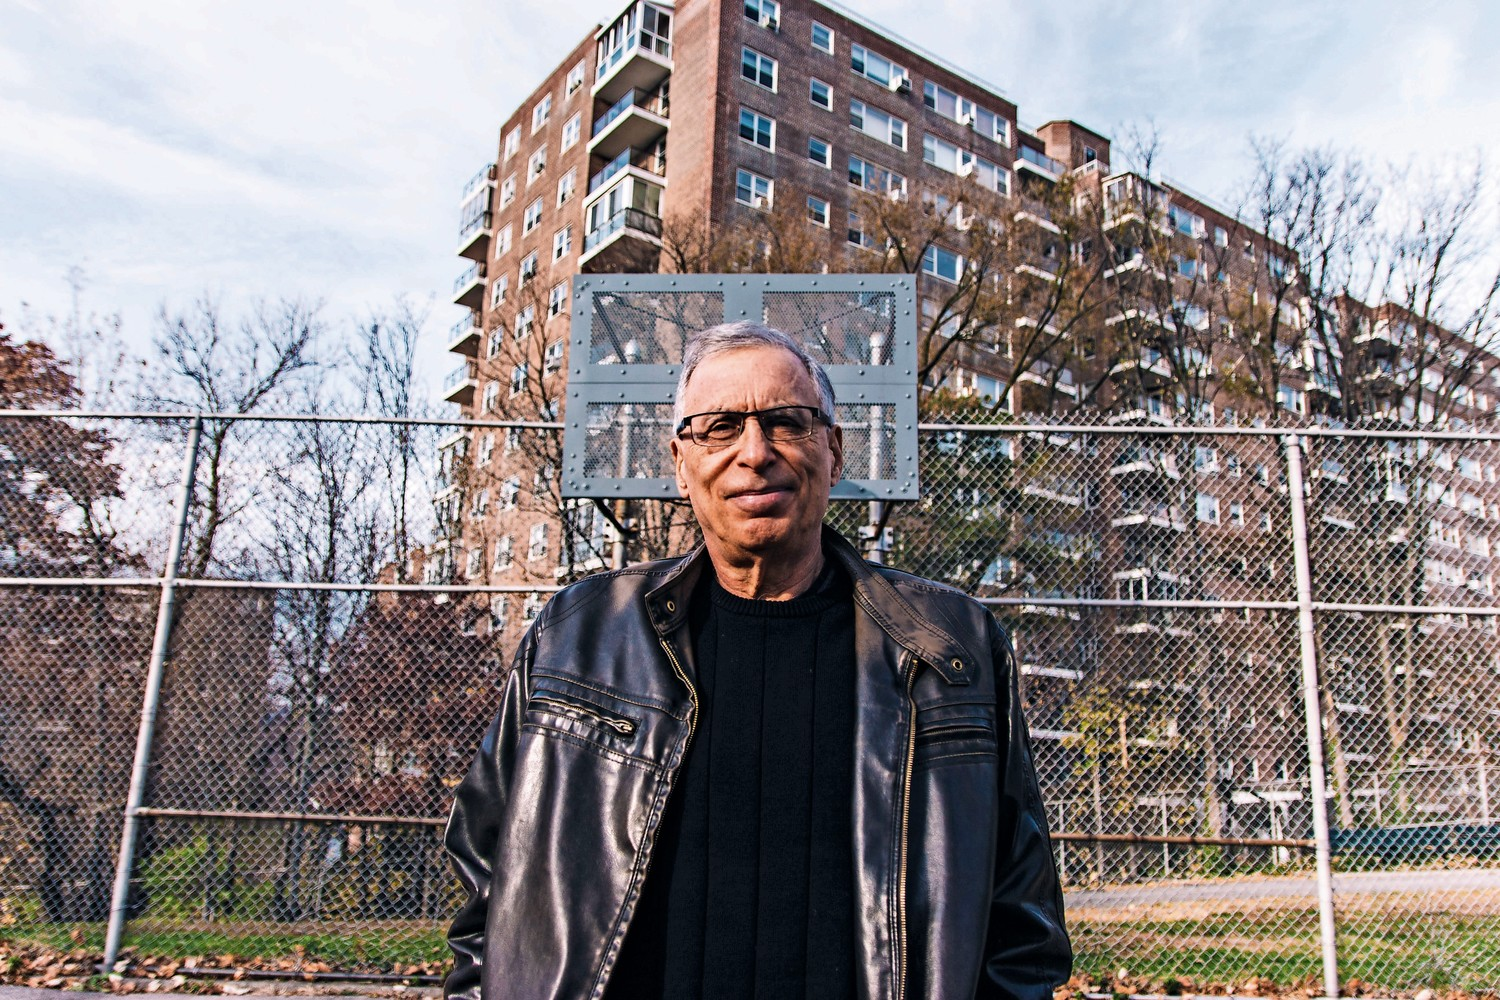 Dr. Paul Thaler said that his novel Bronxland, which released in mid-October, was influenced by his experiences growing up in the East Tremont section of the Bronx. The novel is set in the Bronx, circa the 1960s.